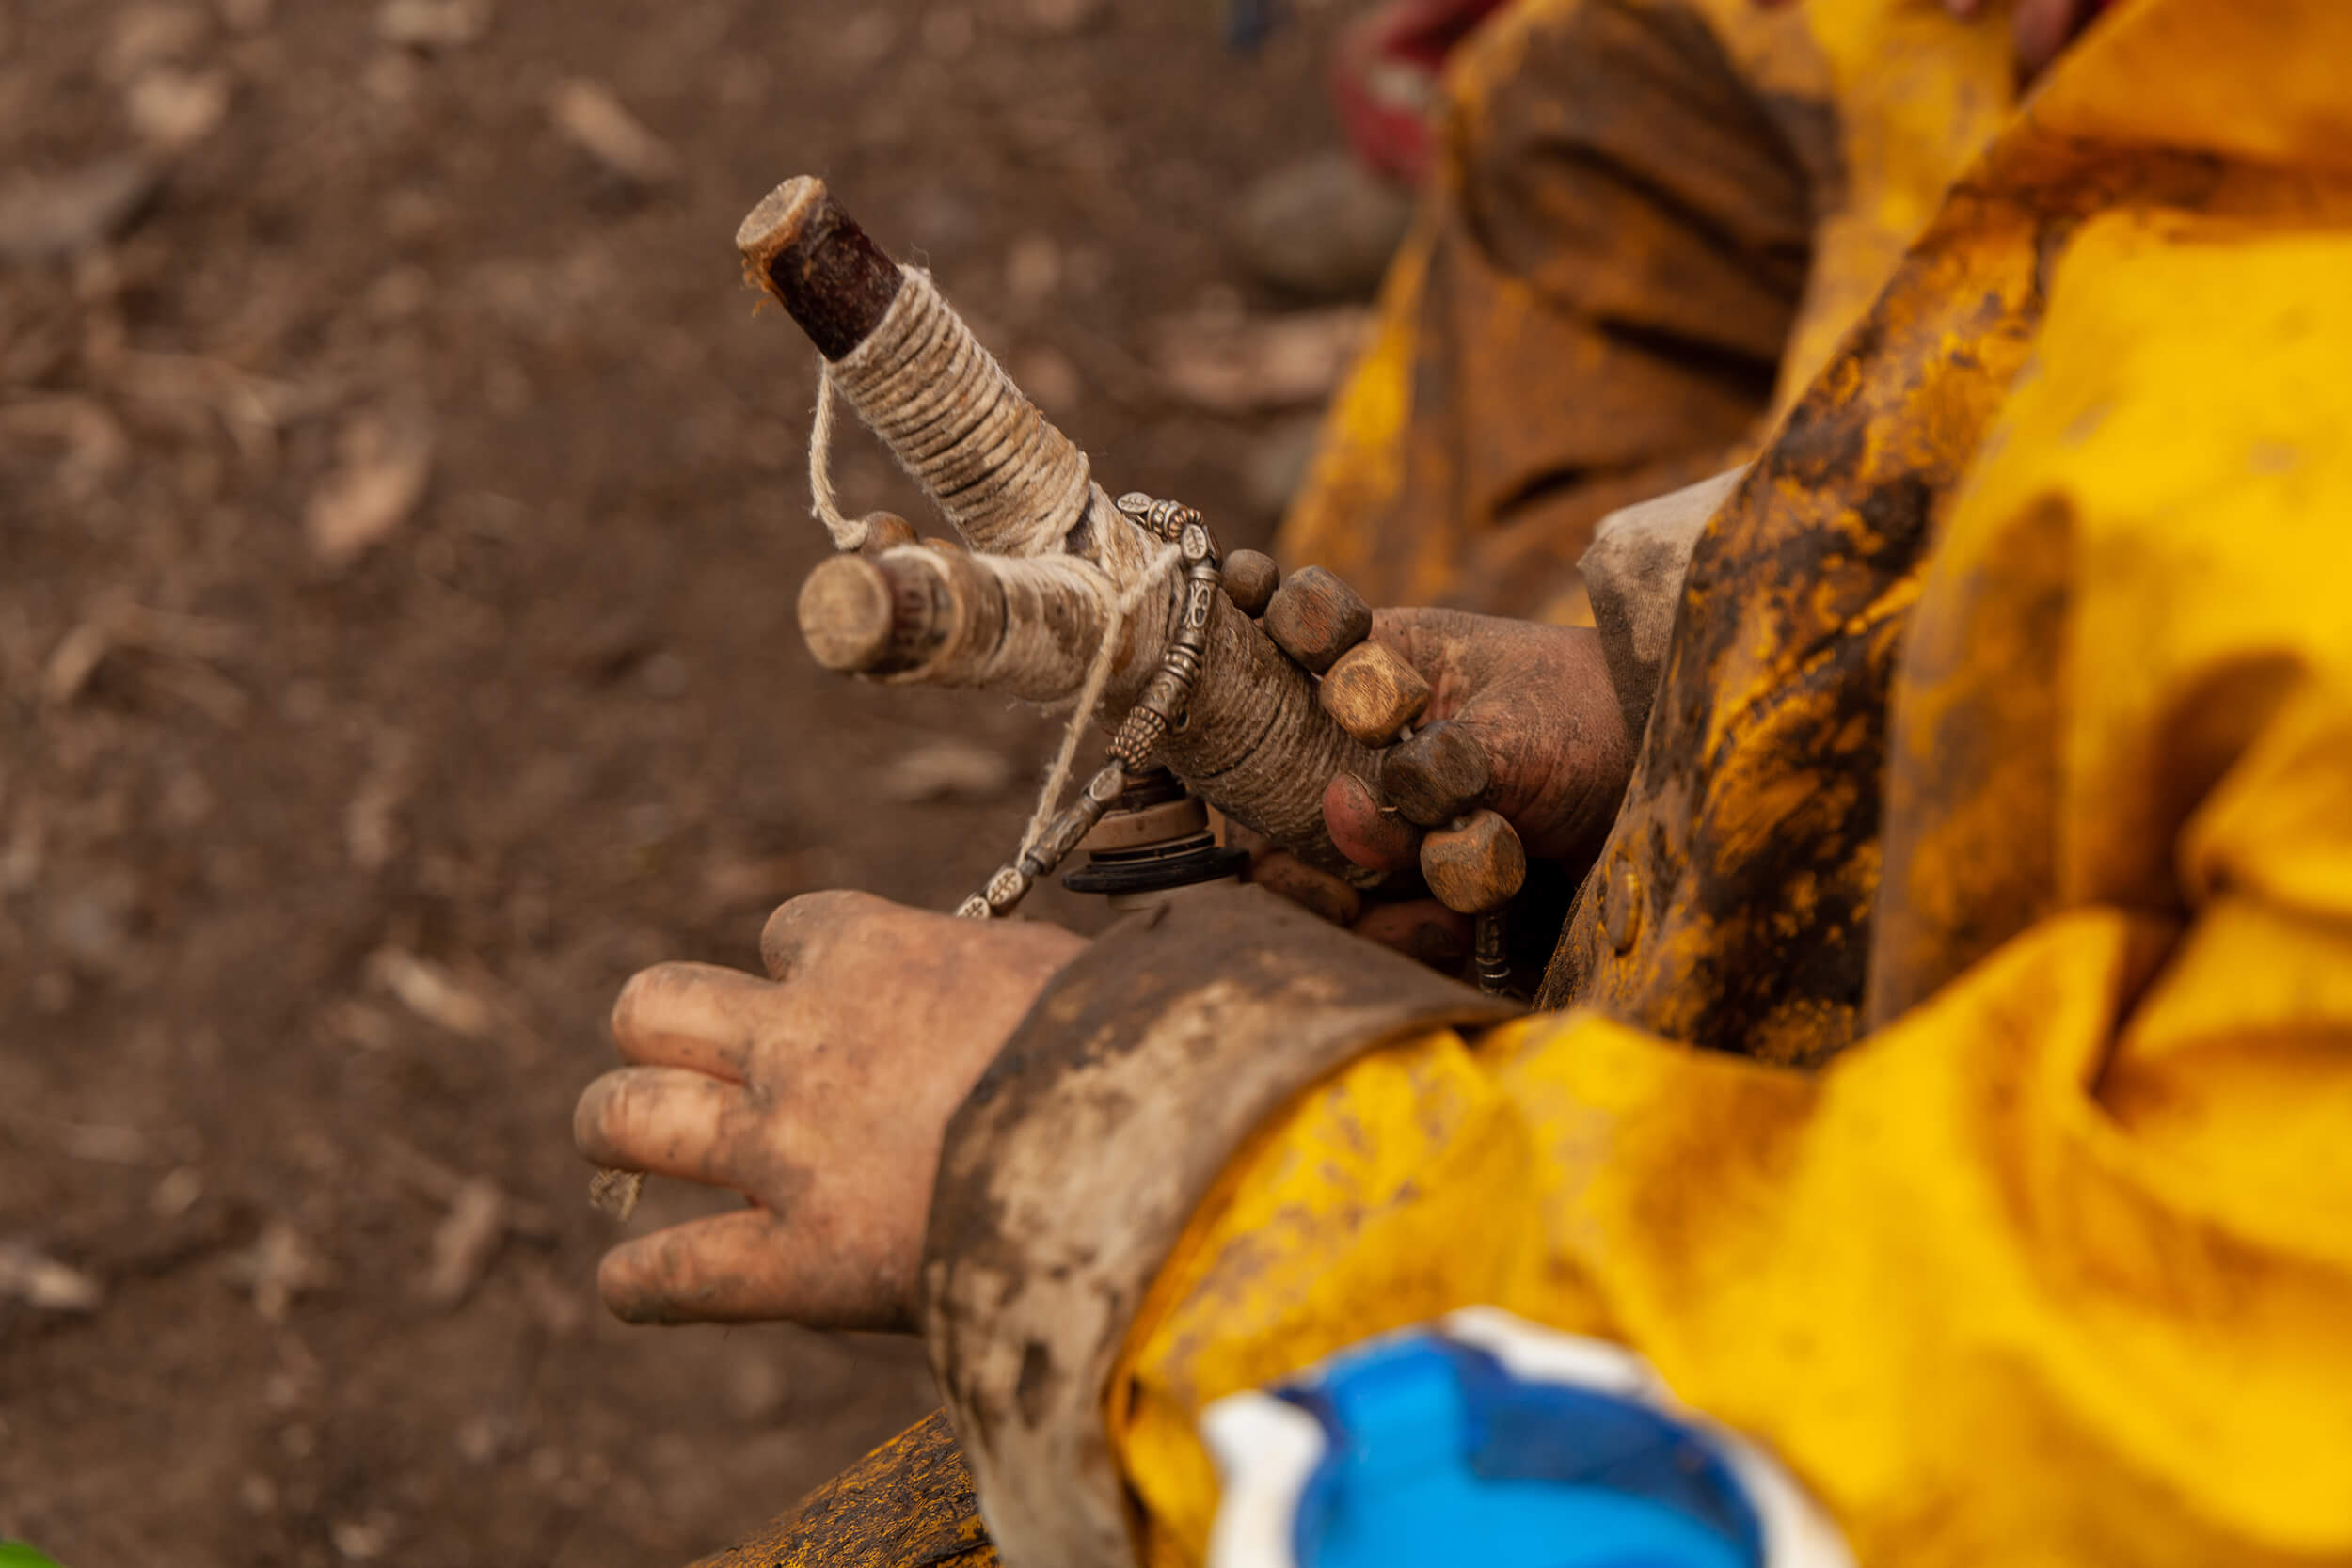 Muddy hands holding a wooden toy